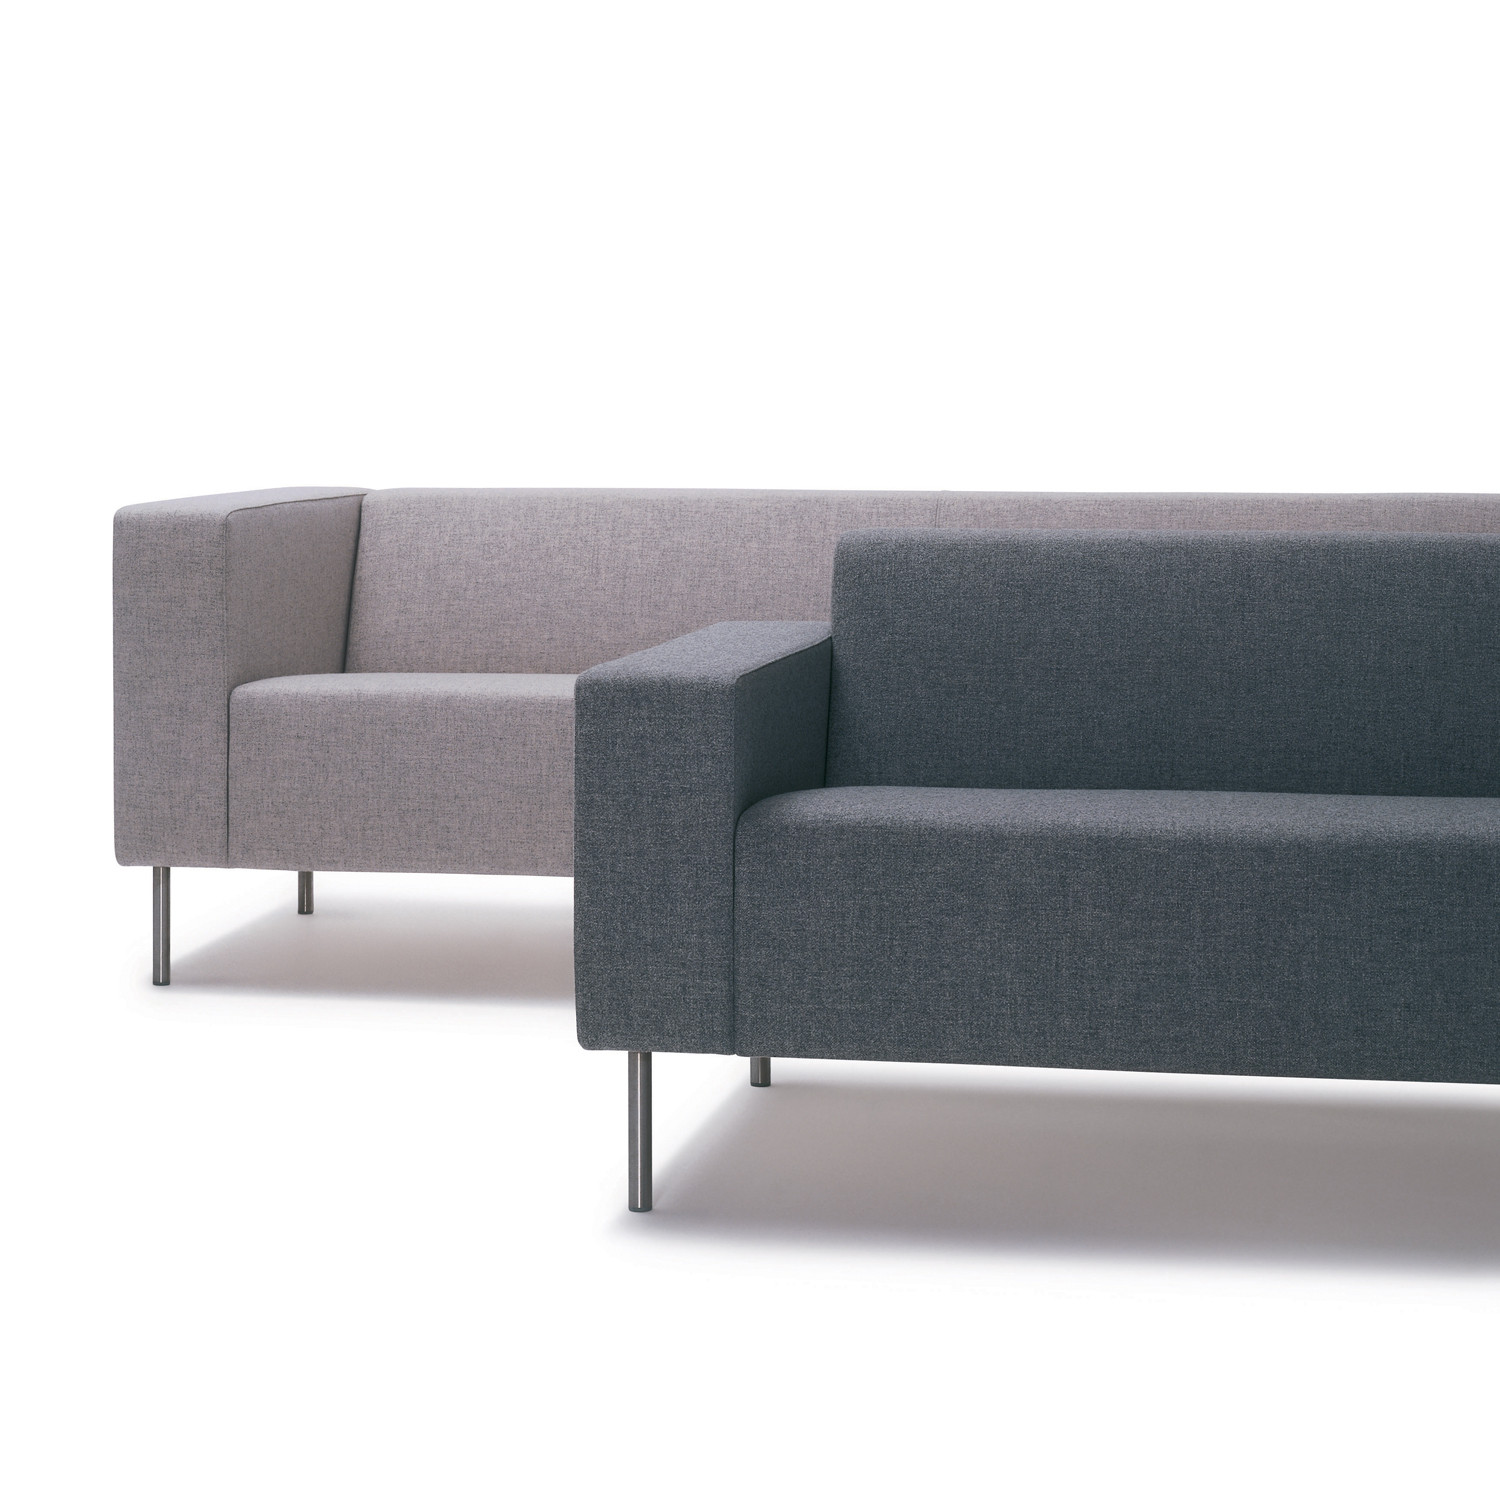 HM18 Modular Seating System